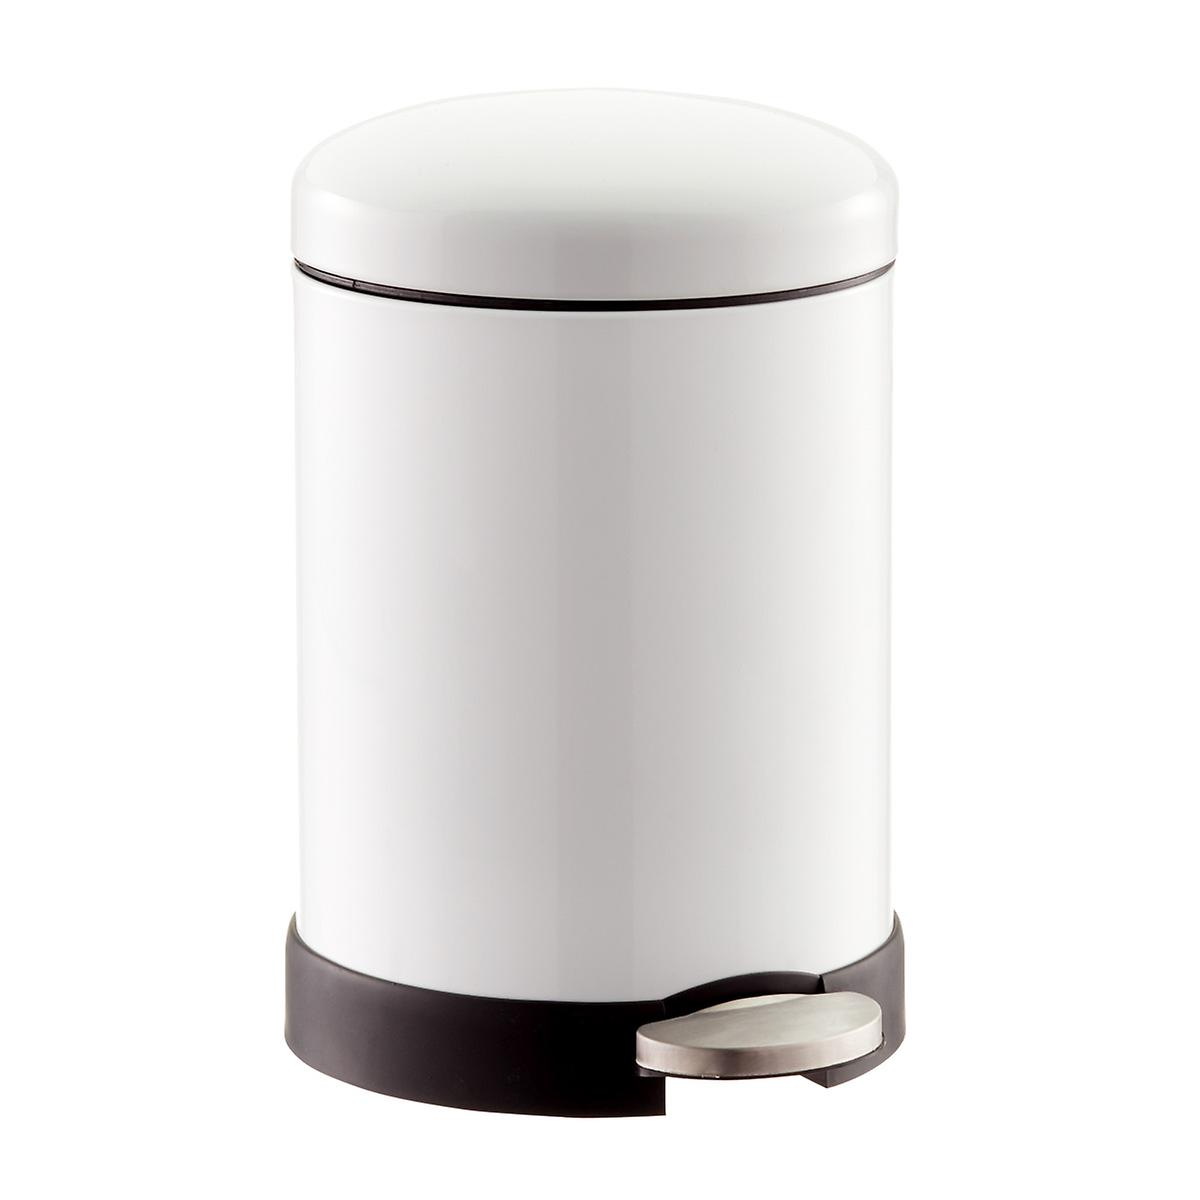 White 1.3 gal. Glossy Round Retro Step Trash Can